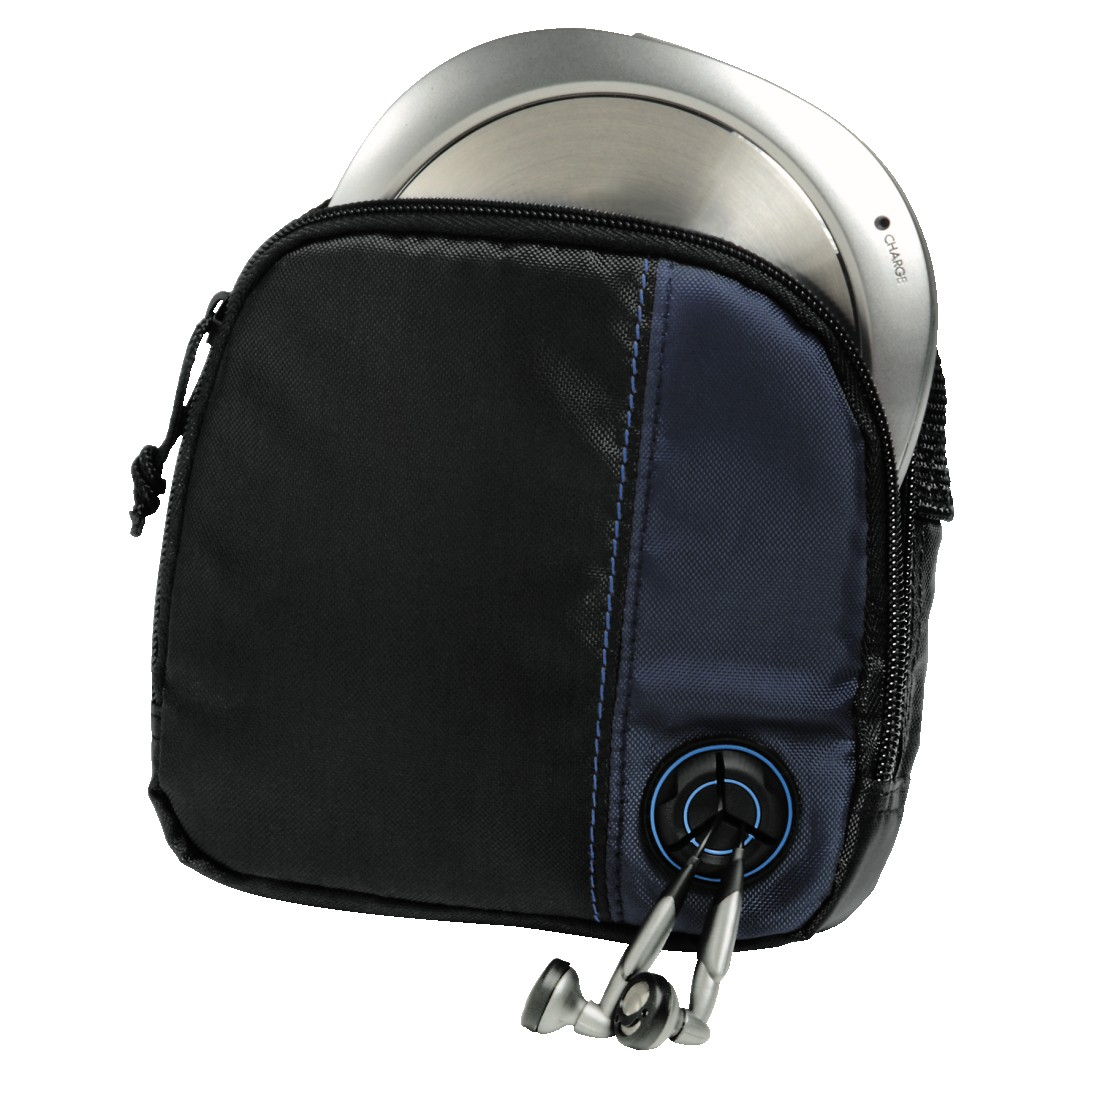 abx High-Res Image - Hama, CD Player Bag for Discman and 3 CDs, black/blue